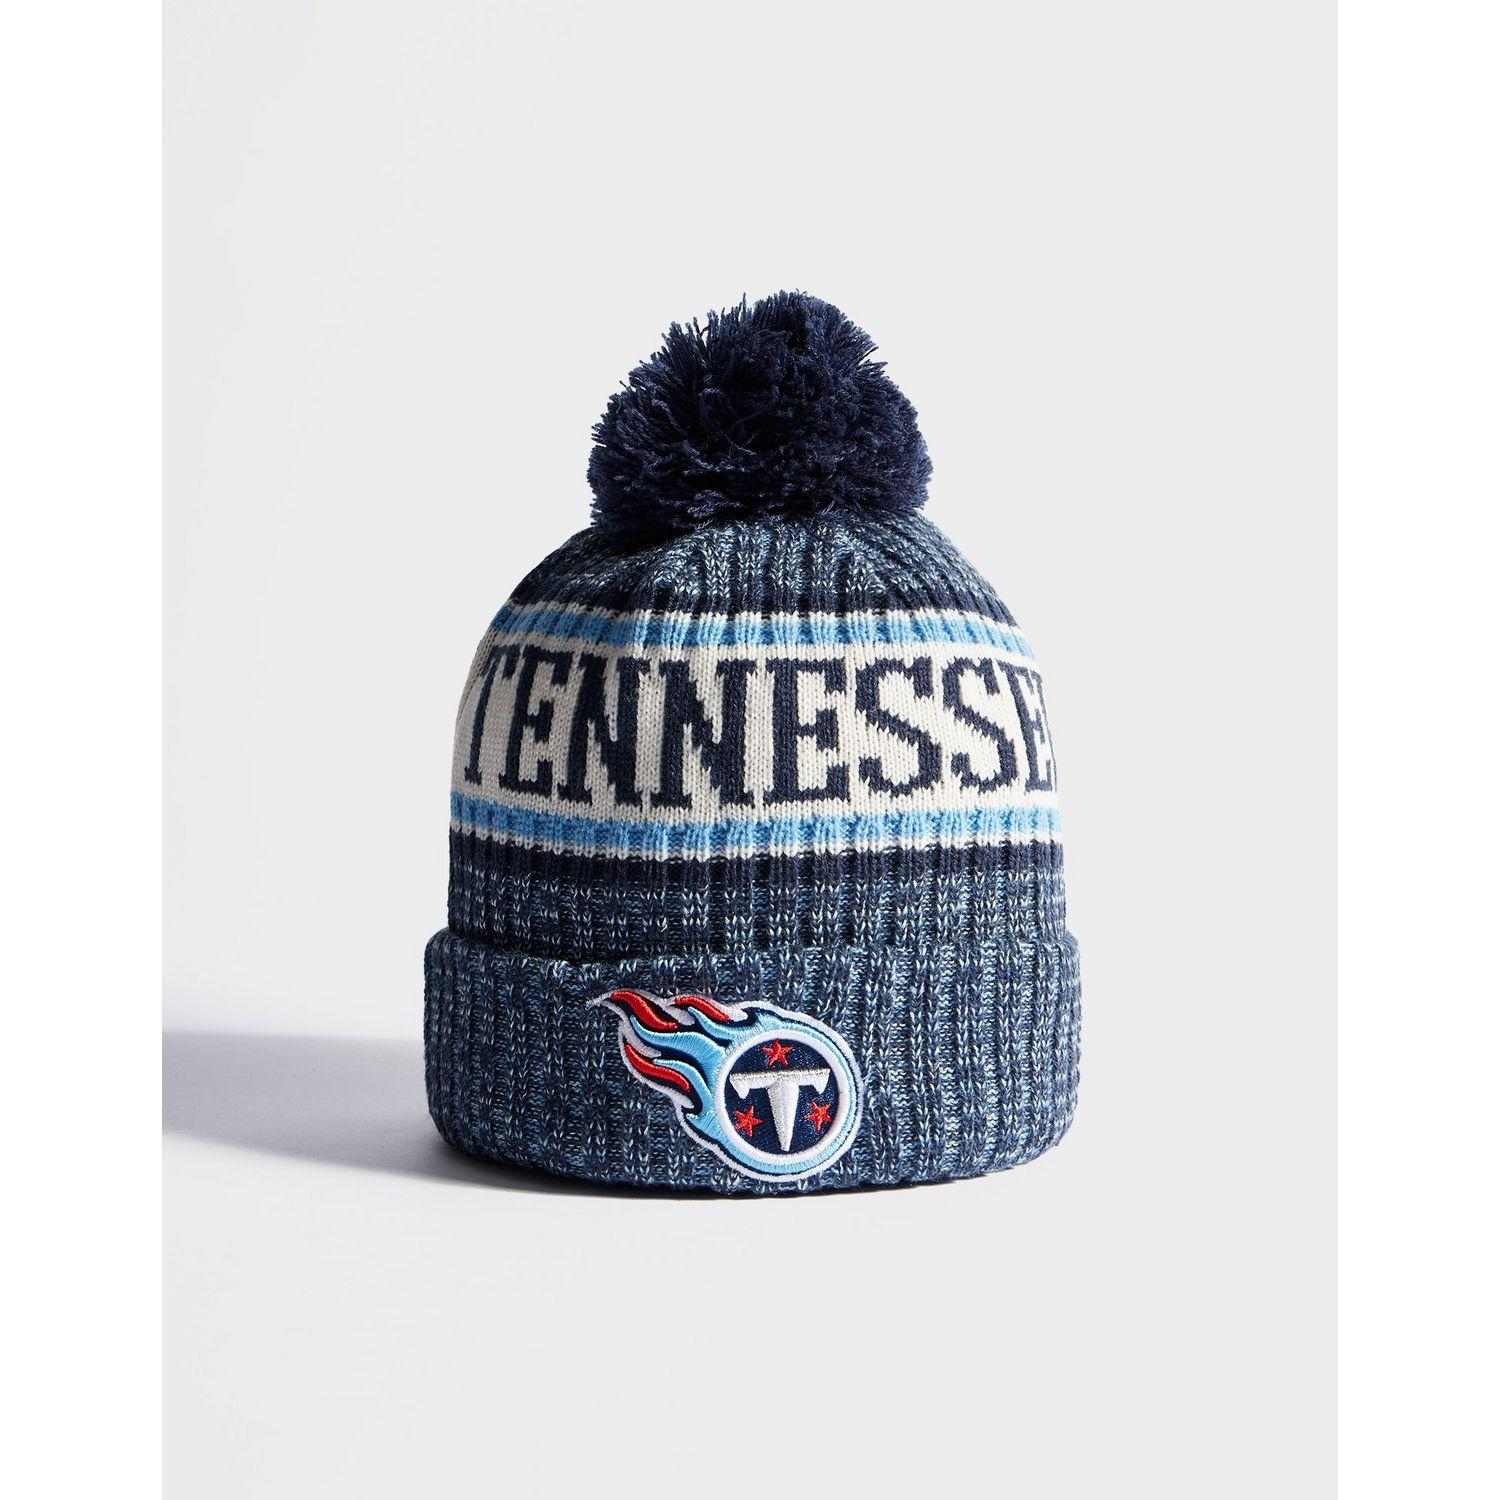 Nfl Sideline Tennessee Titans Beanie